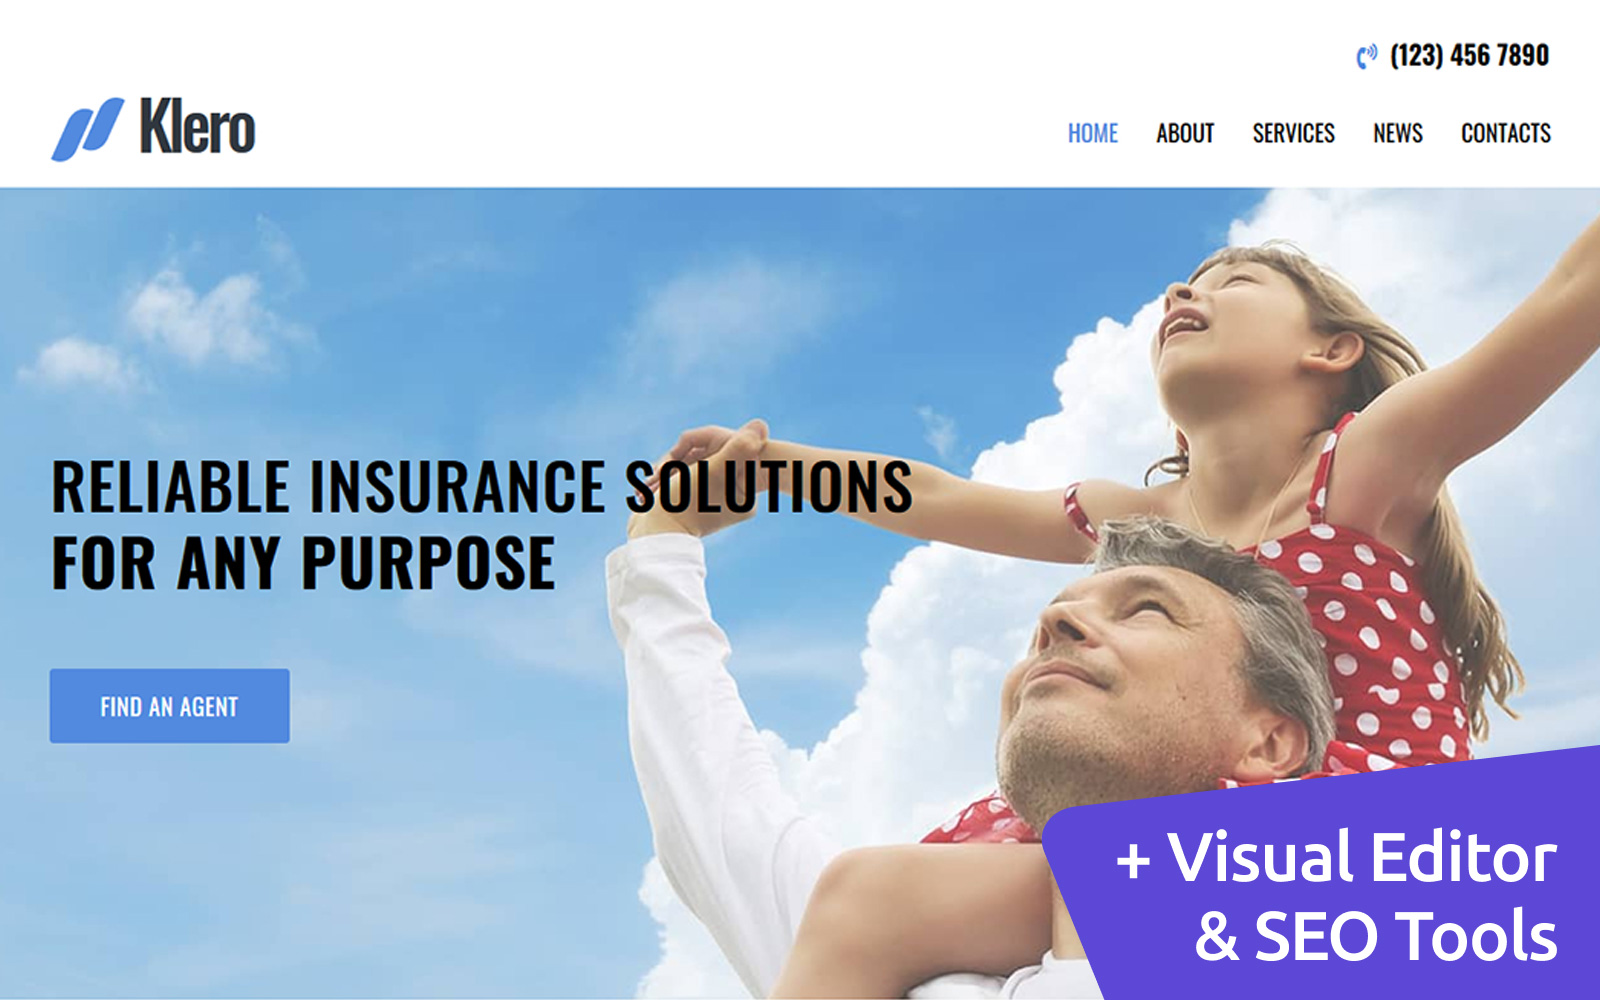 Klero - Insurance Services Moto CMS 3 Template